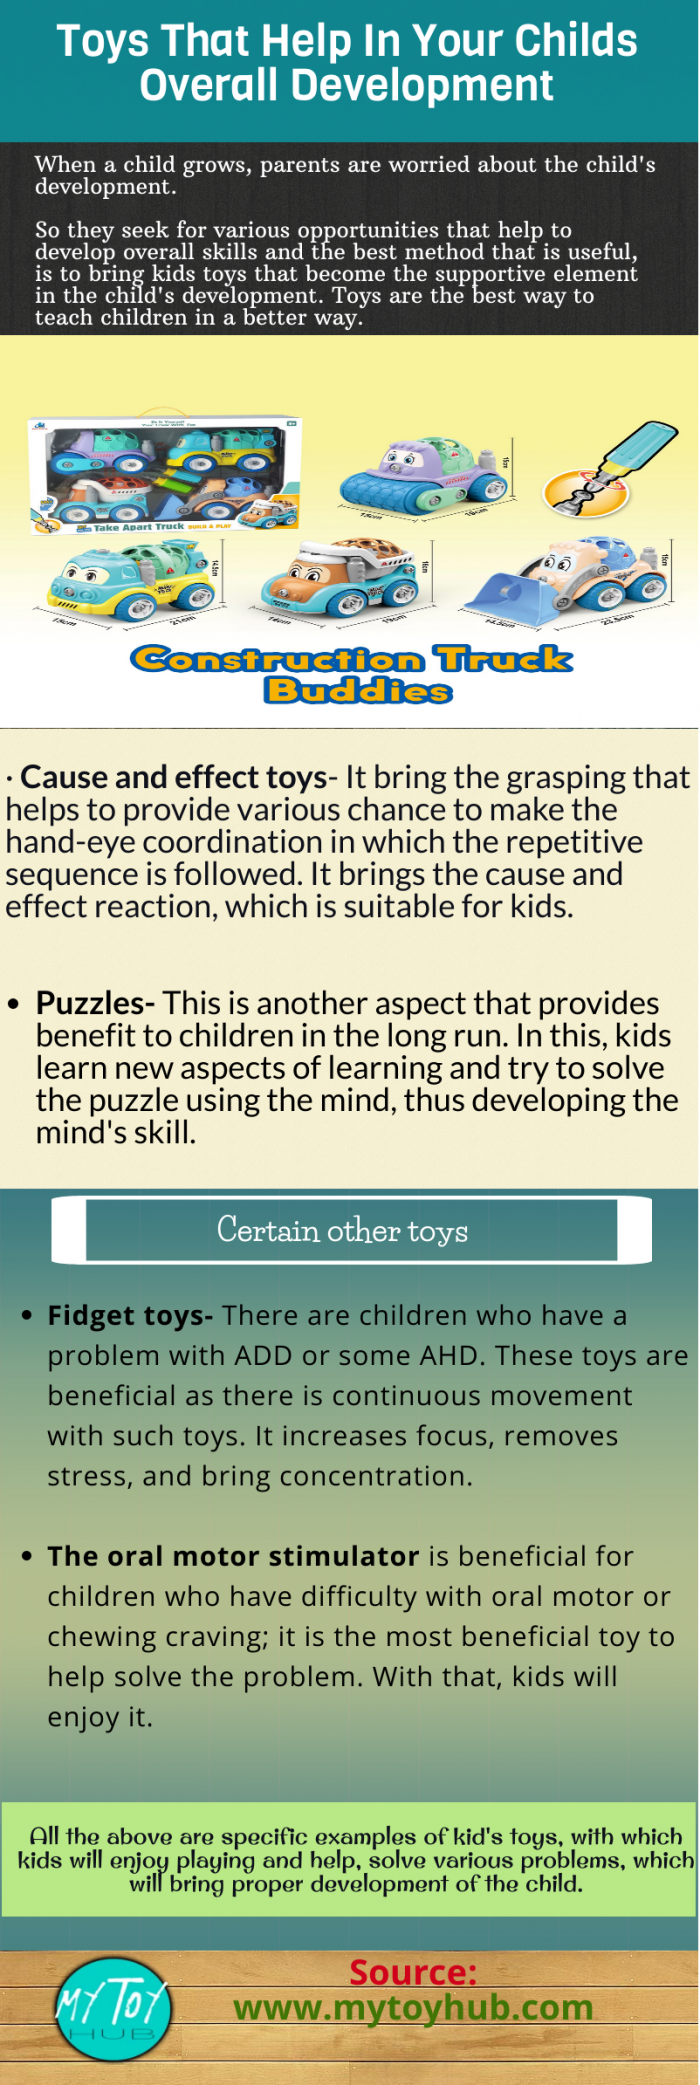 Buy Toys For Your Kids Online